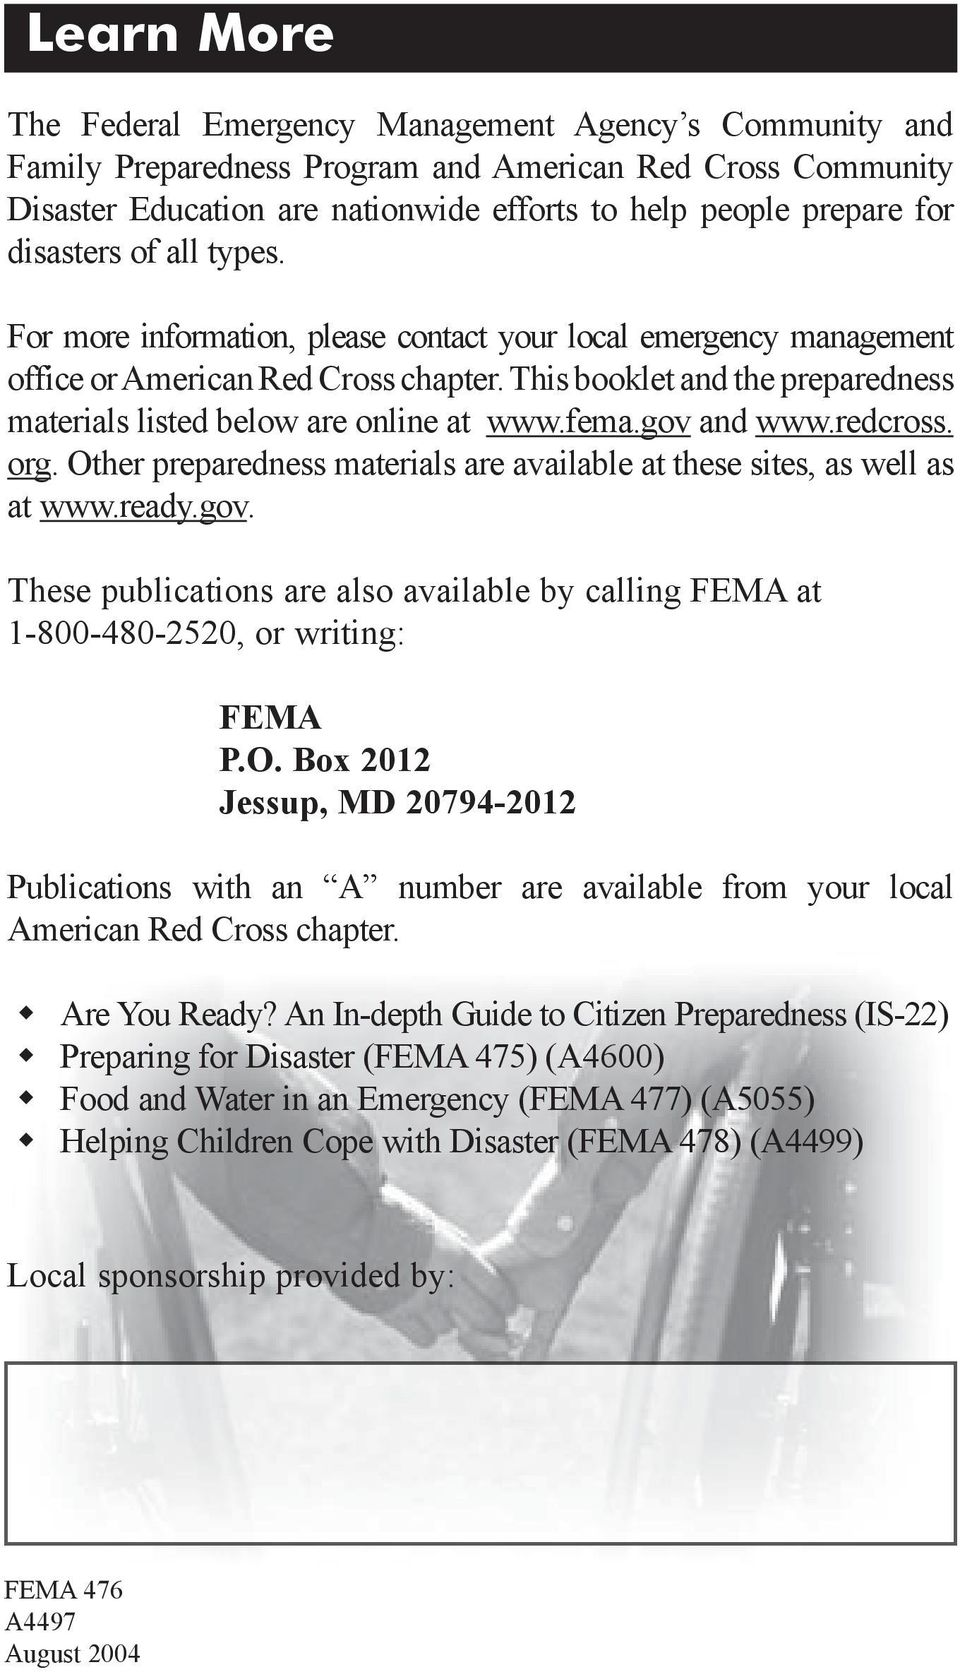 This booklet and the preparedness materials listed below are online at www.fema.gov and www.redcross. org. Other preparedness materials are available at these sites, as well as at www.ready.gov. These publications are also available by calling FEMA at 1-800-480-2520, or writing: FEMA P.